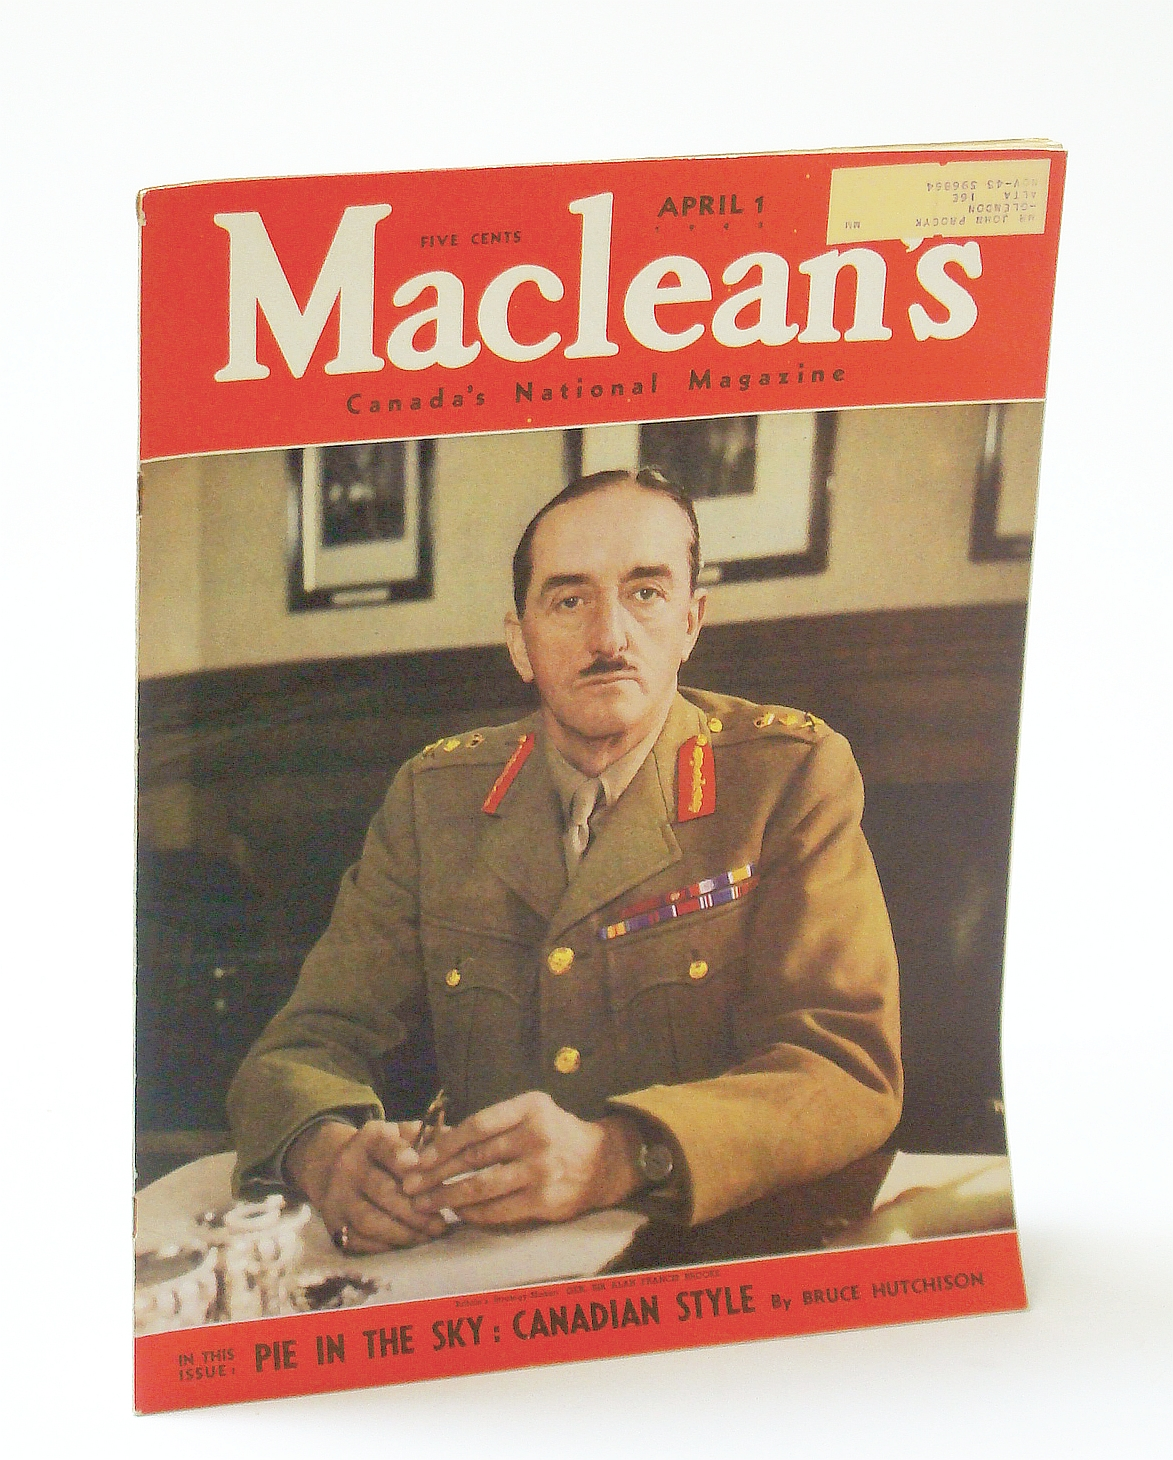 Image for Maclean's, Canada's National Magazine, April (Apr.) 1 1943, Vol. 56, No. 7 - Sir Alan Francis Brooke Cover Photo